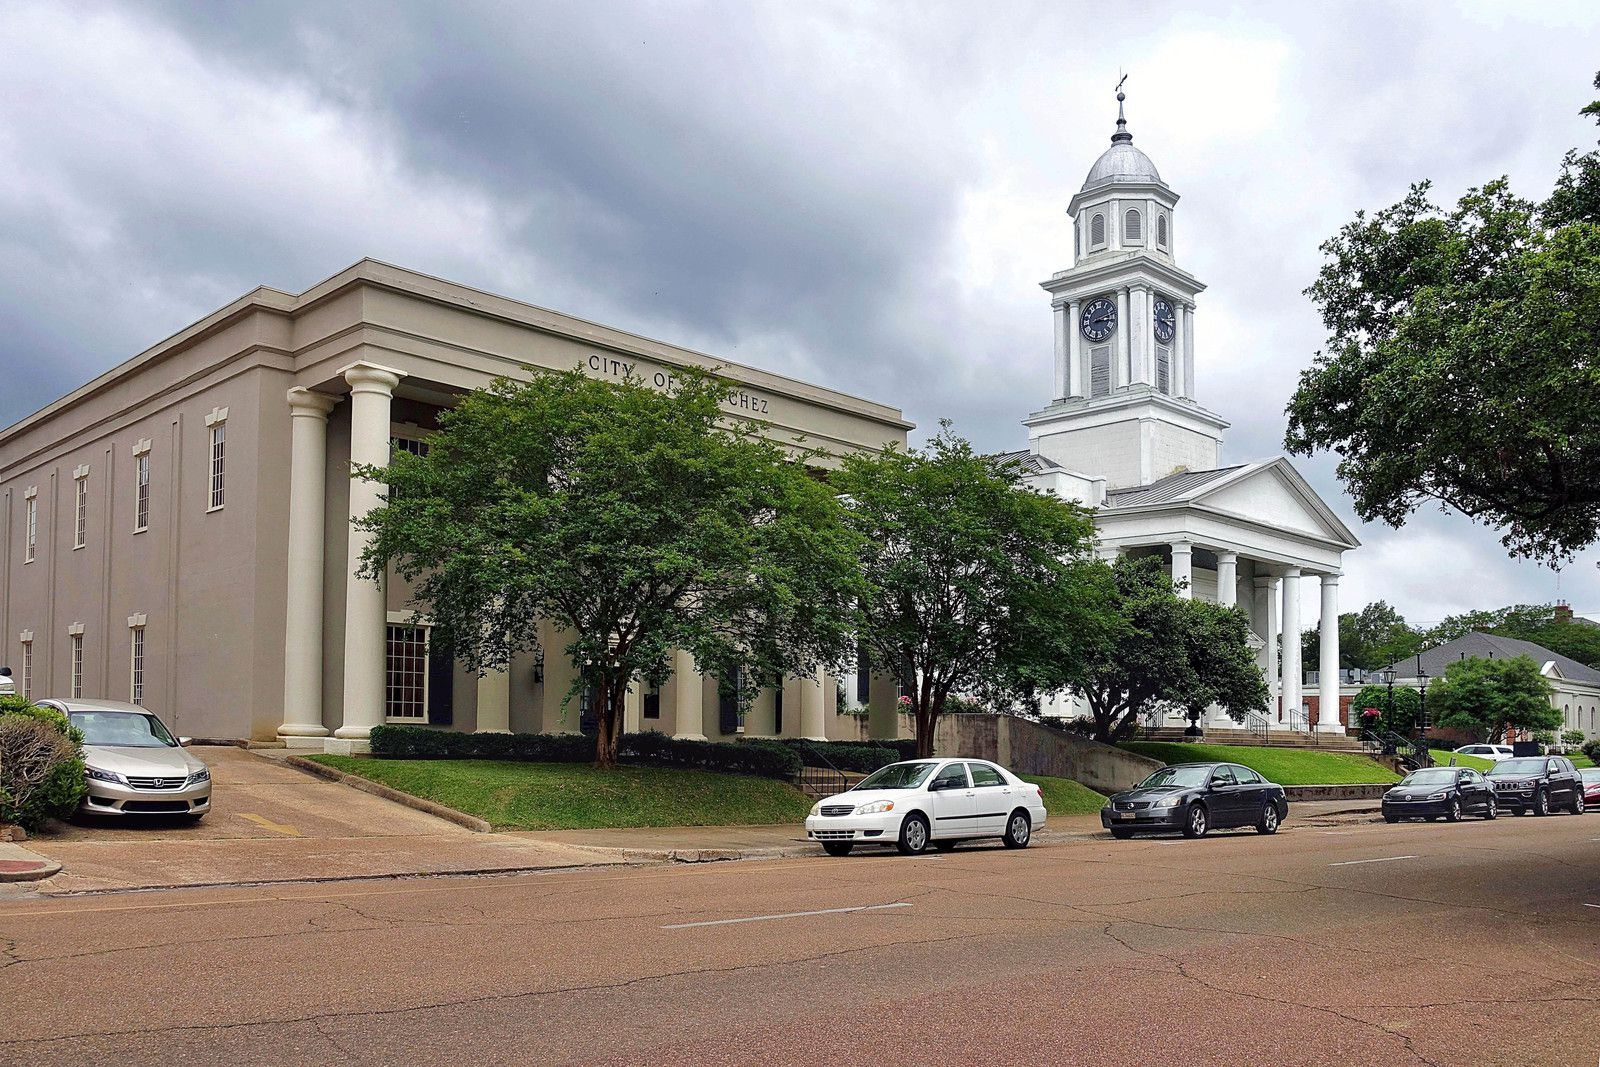 Natchez Council Chamber et First Presbyterian church